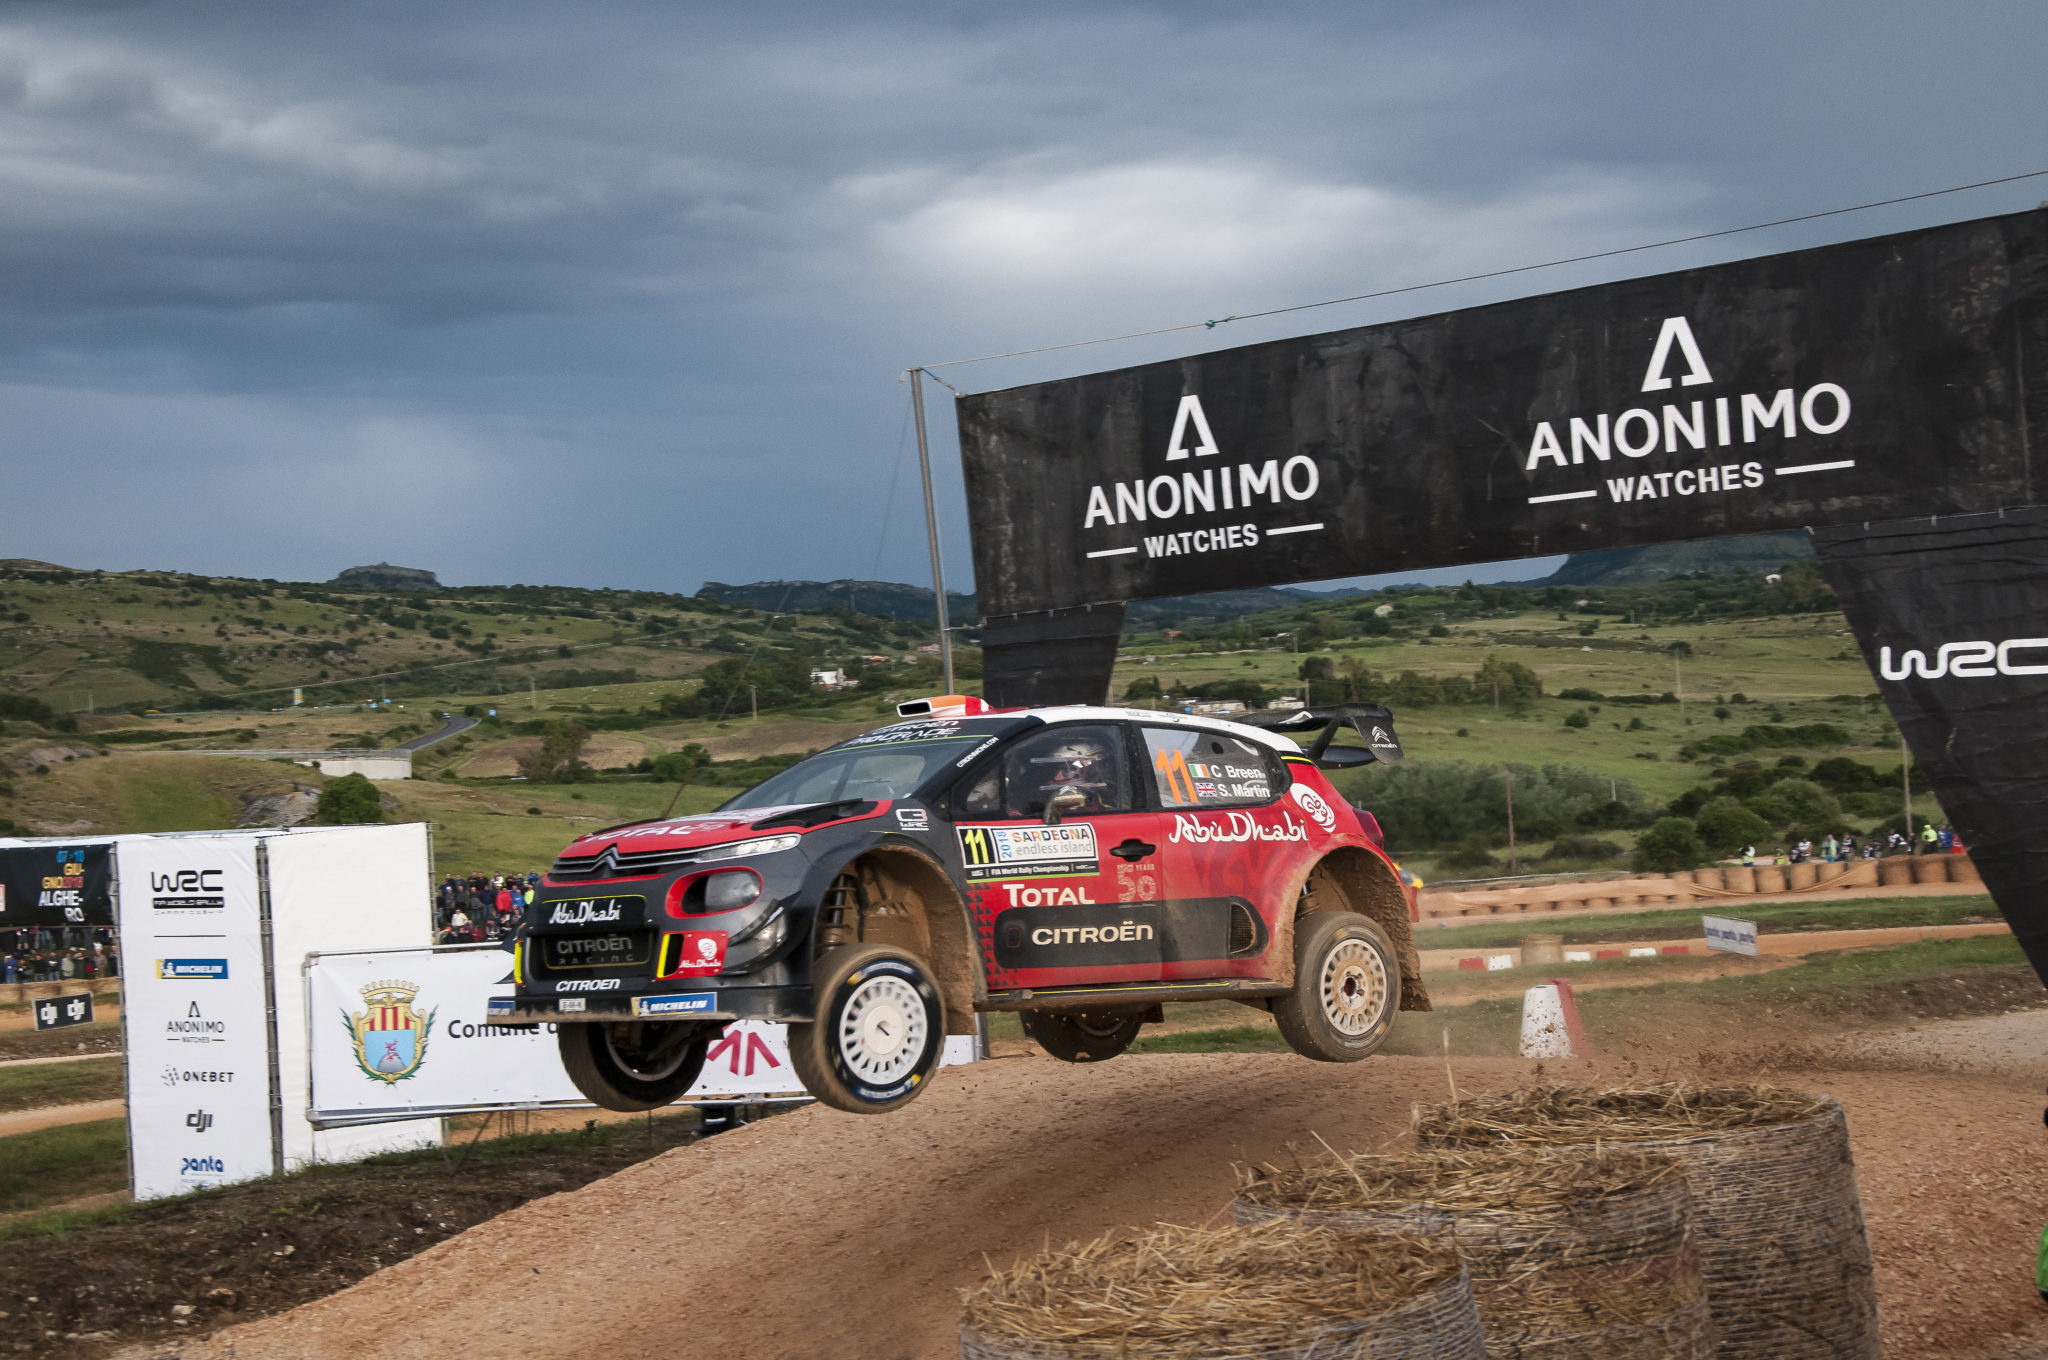 ANONIMO and WRC at Ittiri Arena Show Sardinia